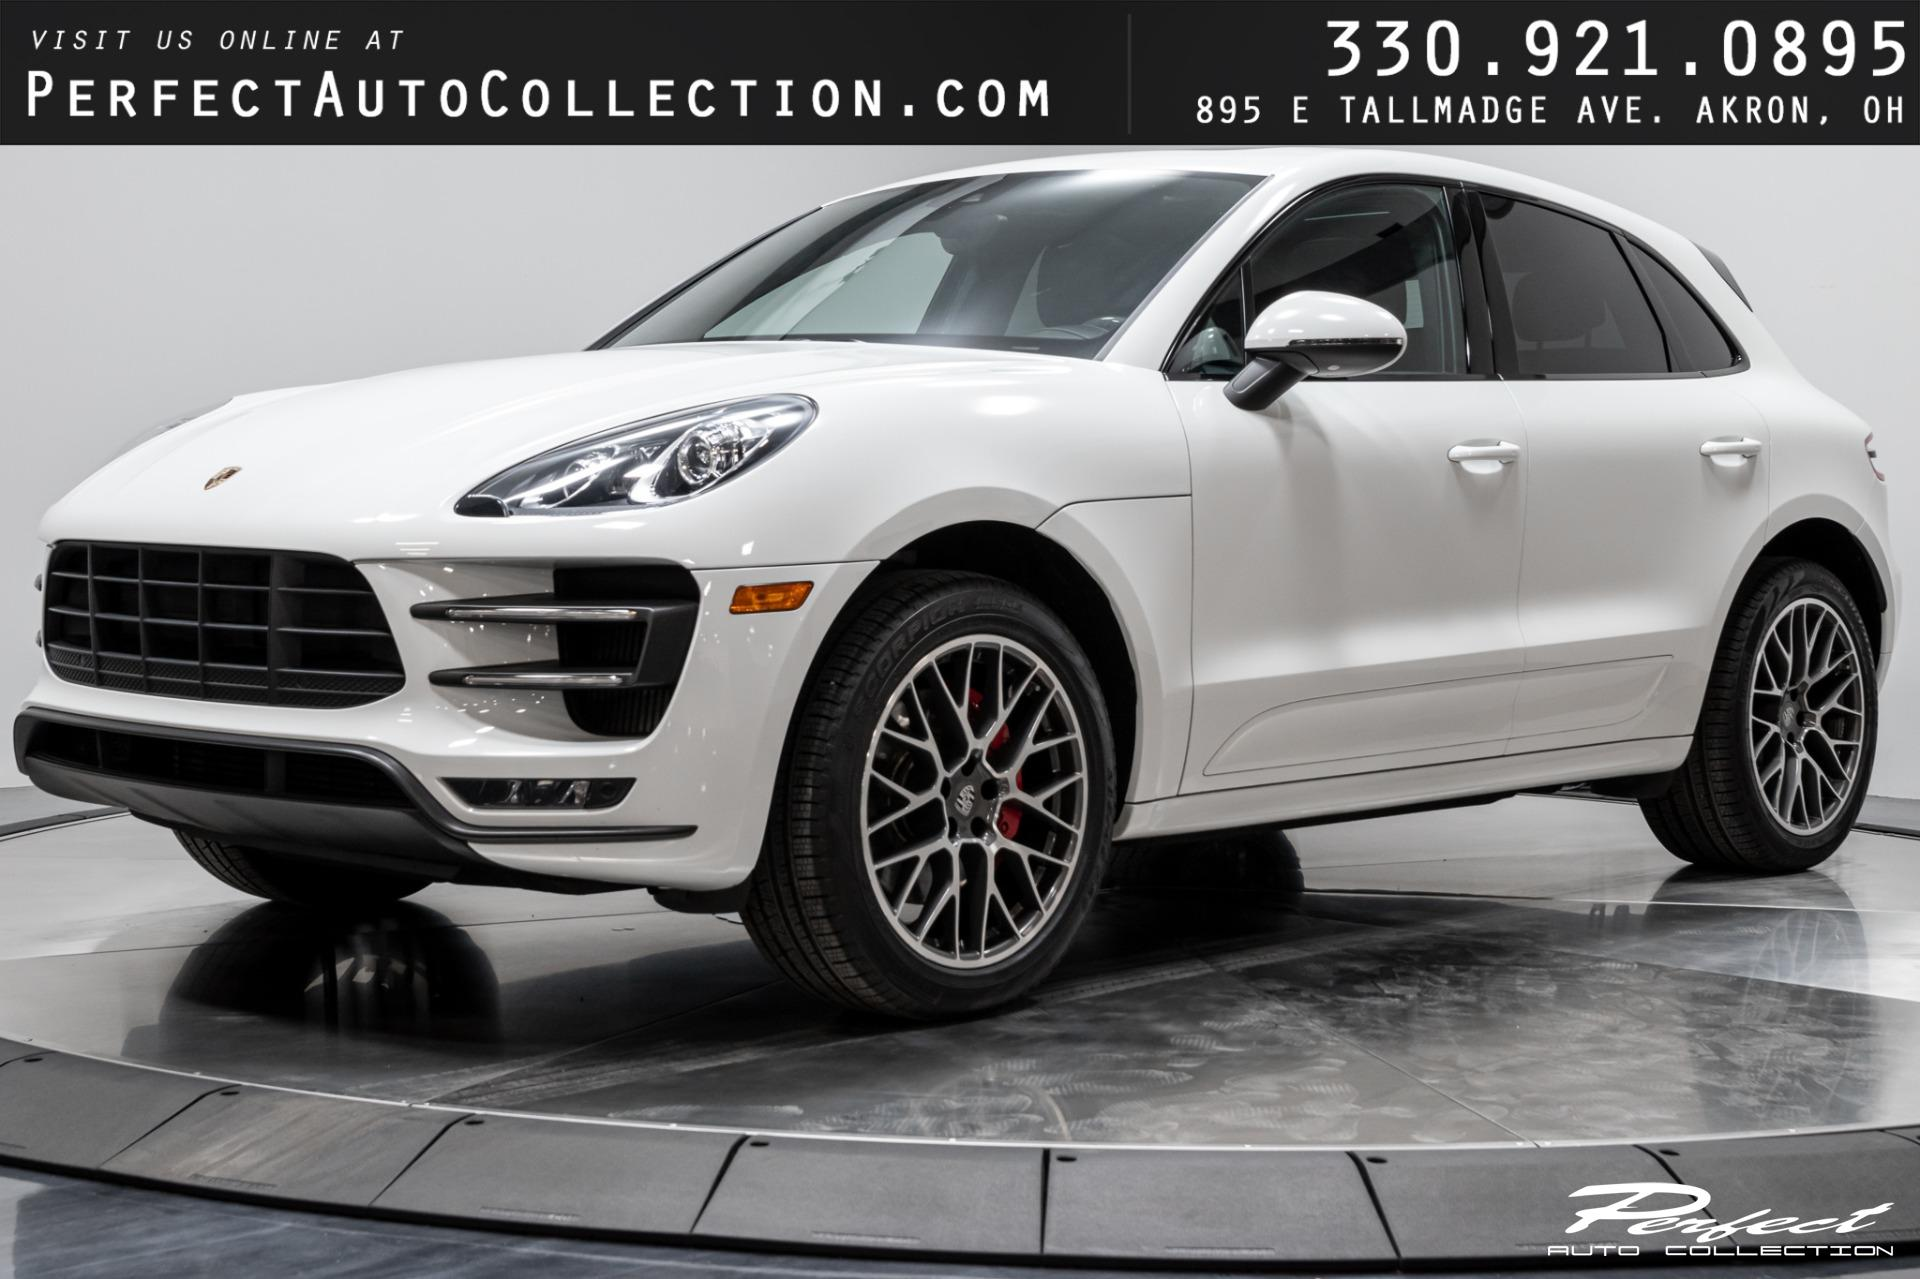 Used 2016 Porsche Macan Turbo for sale $49,495 at Perfect Auto Collection in Akron OH 44310 1